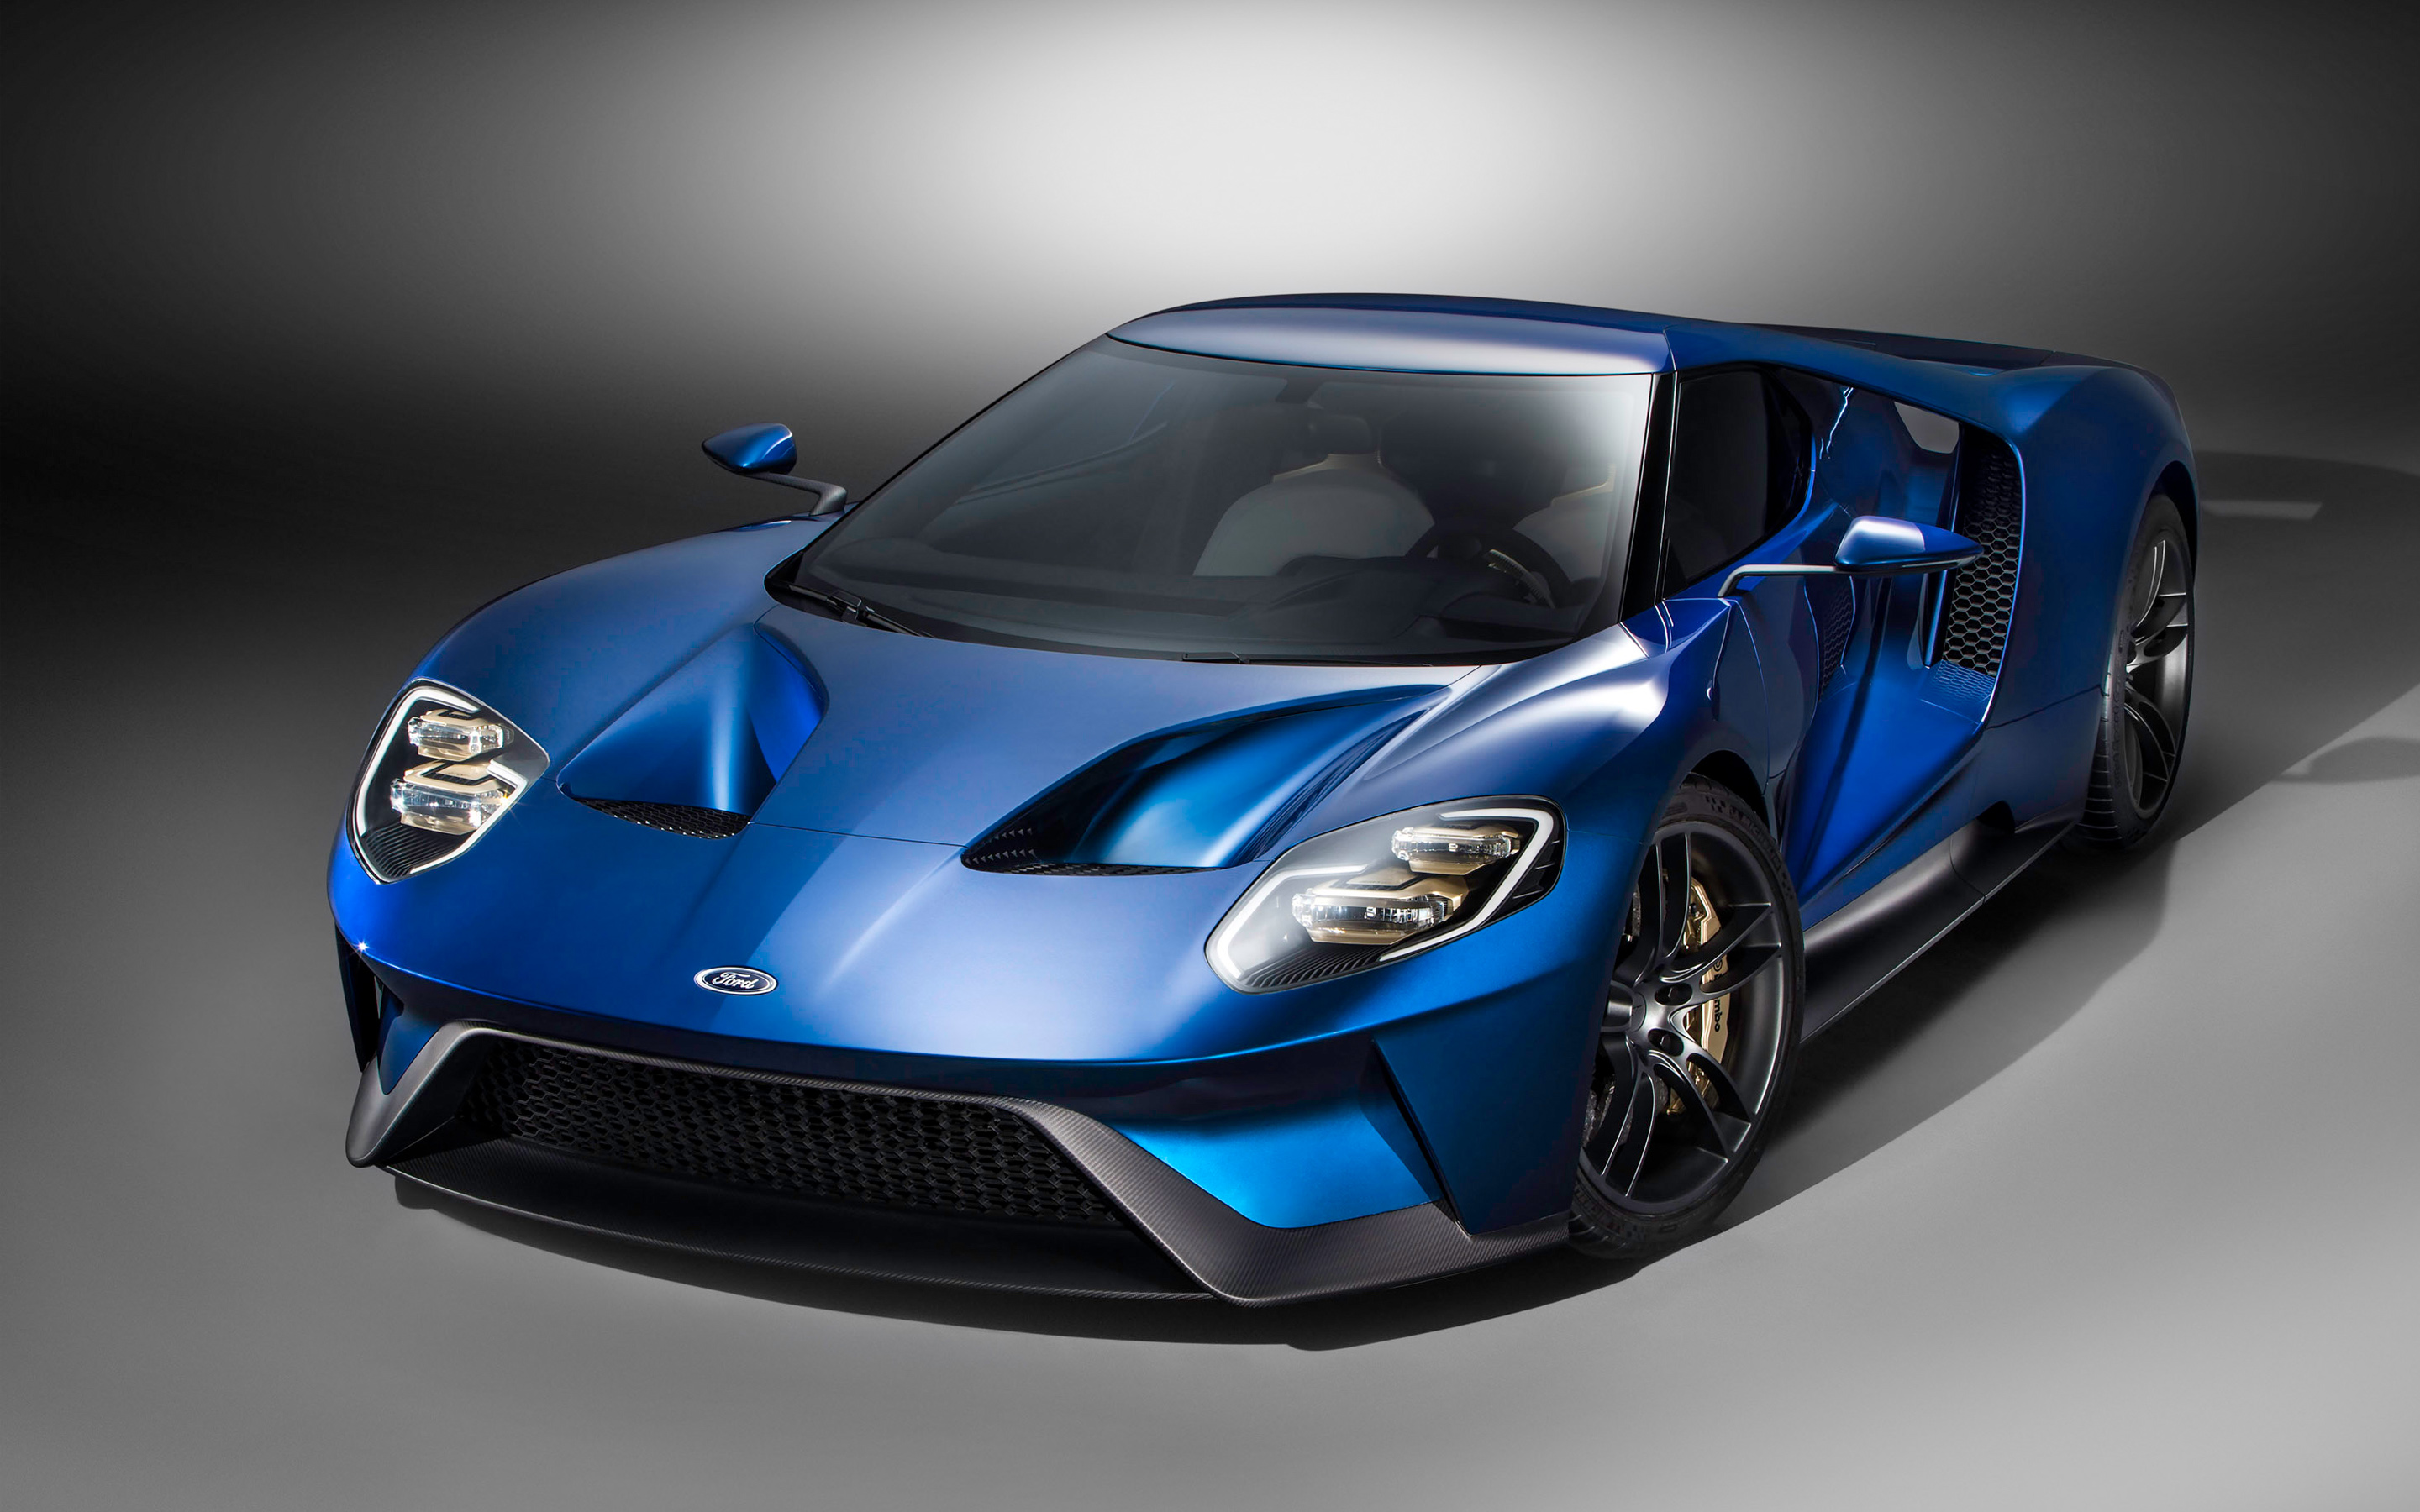 2015 Ford GT Wallpaper HD Car Wallpapers 2880x1800